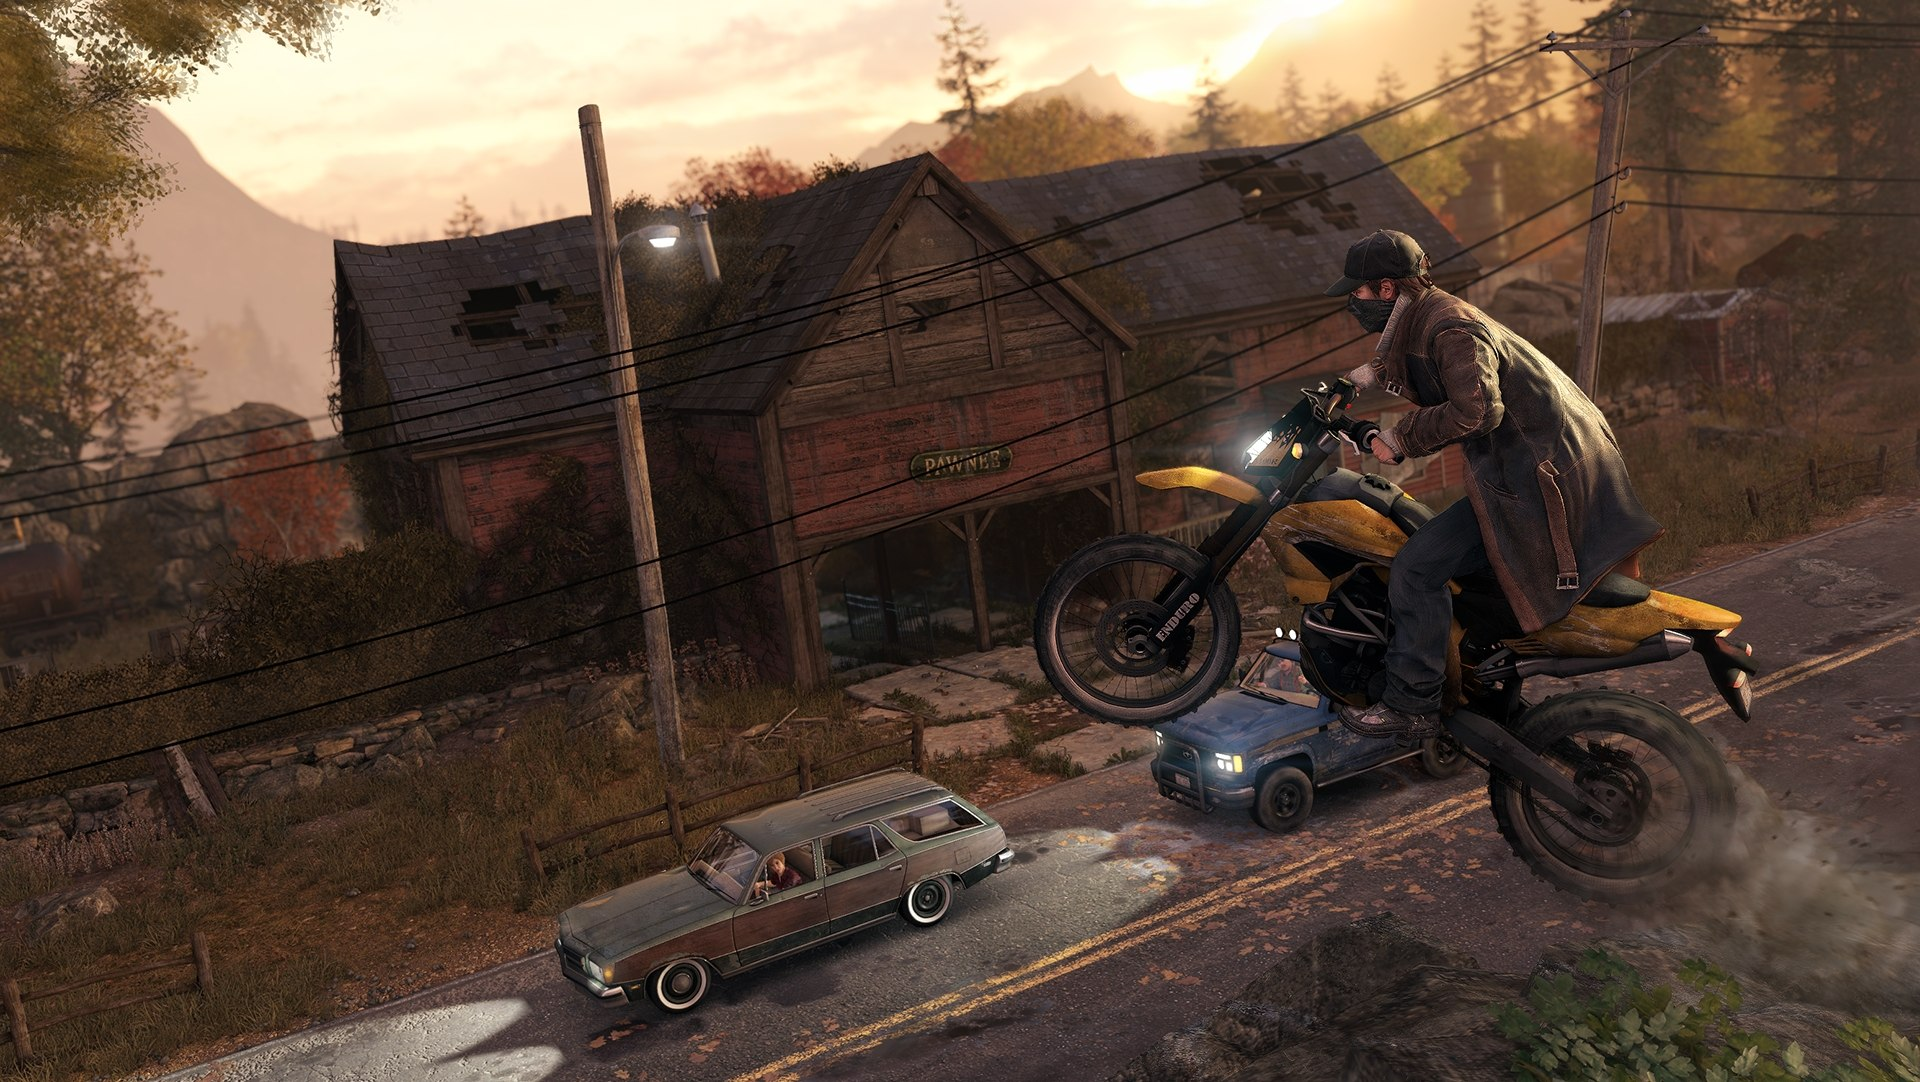 watch_dogs_screen_motorcycle_jump